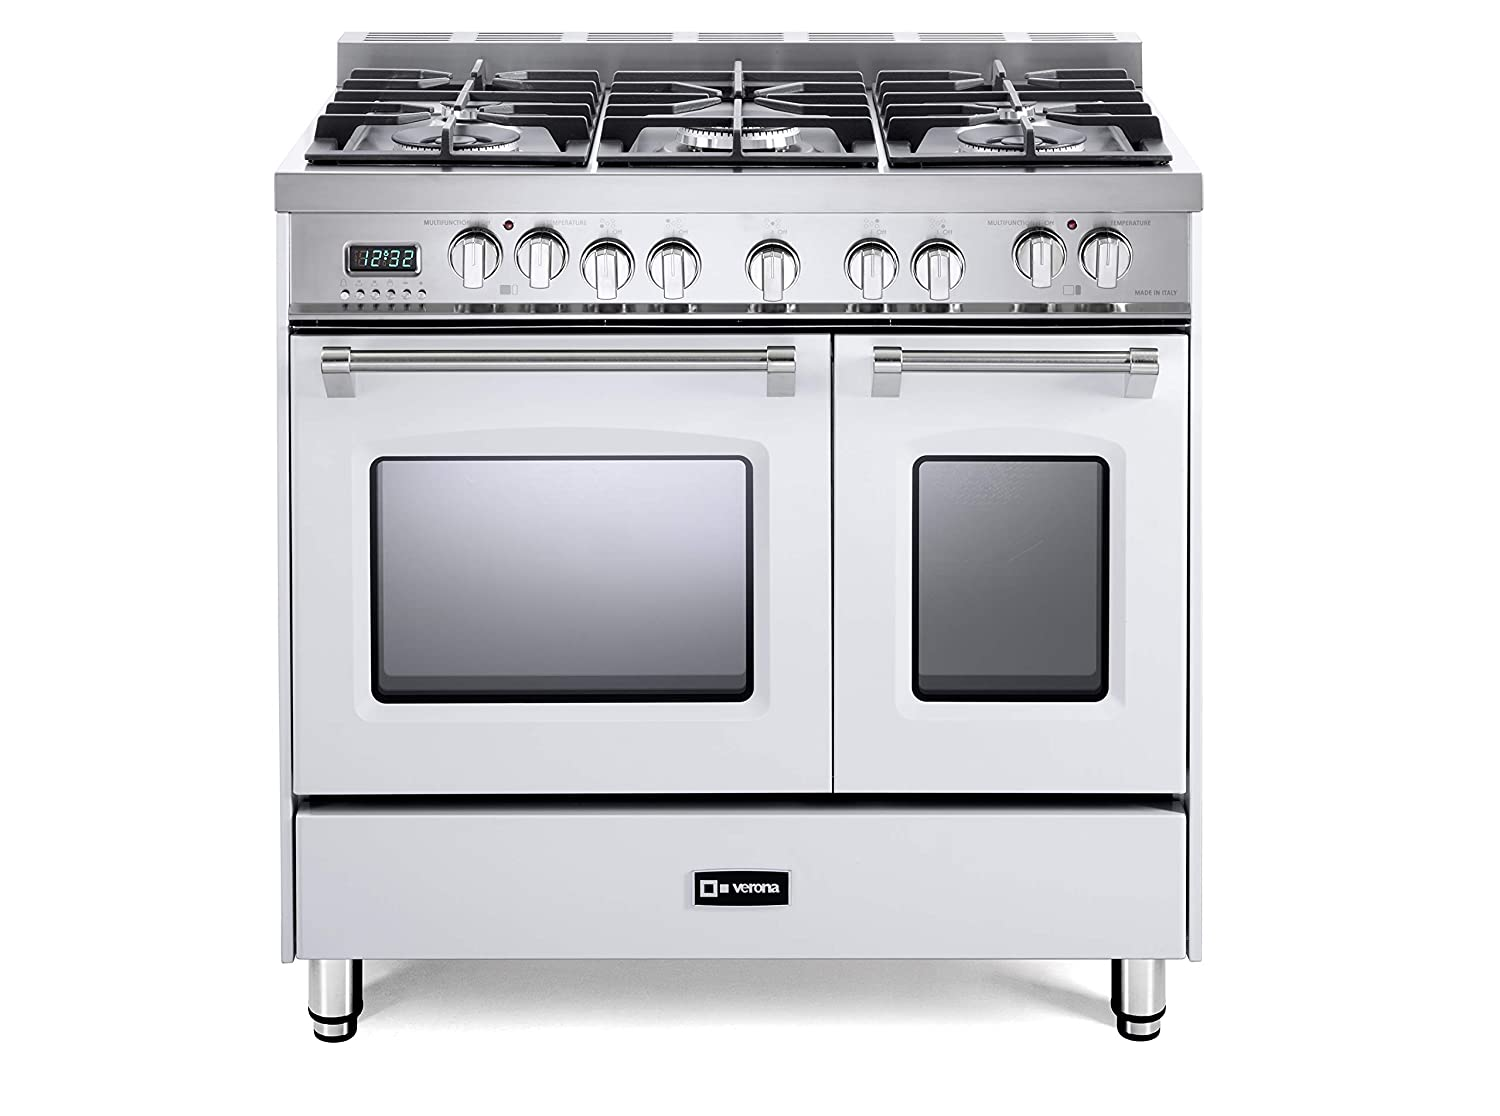 Verona Prestige VPFSGE365DW 36 inch. Dual Fuel Range 5 Sealed Burners Double Oven Convection Storage Drawer White